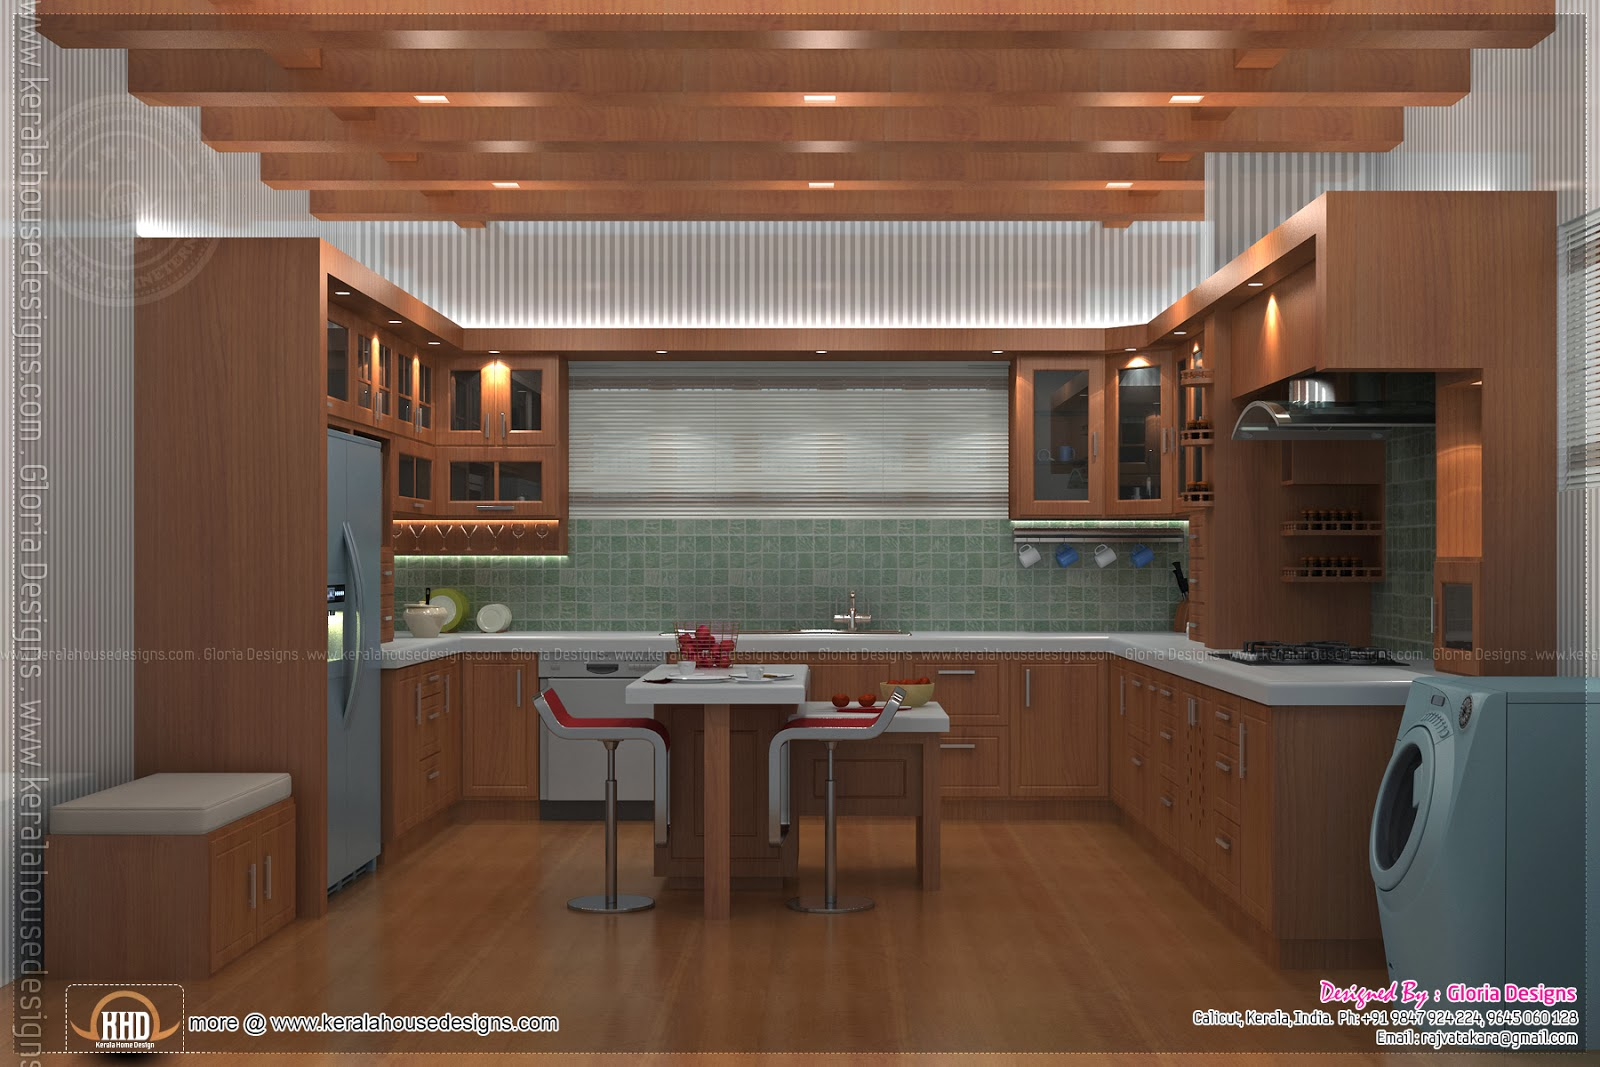 Home interior designs by gloria designs calicut kerala for Kerala style kitchen photos